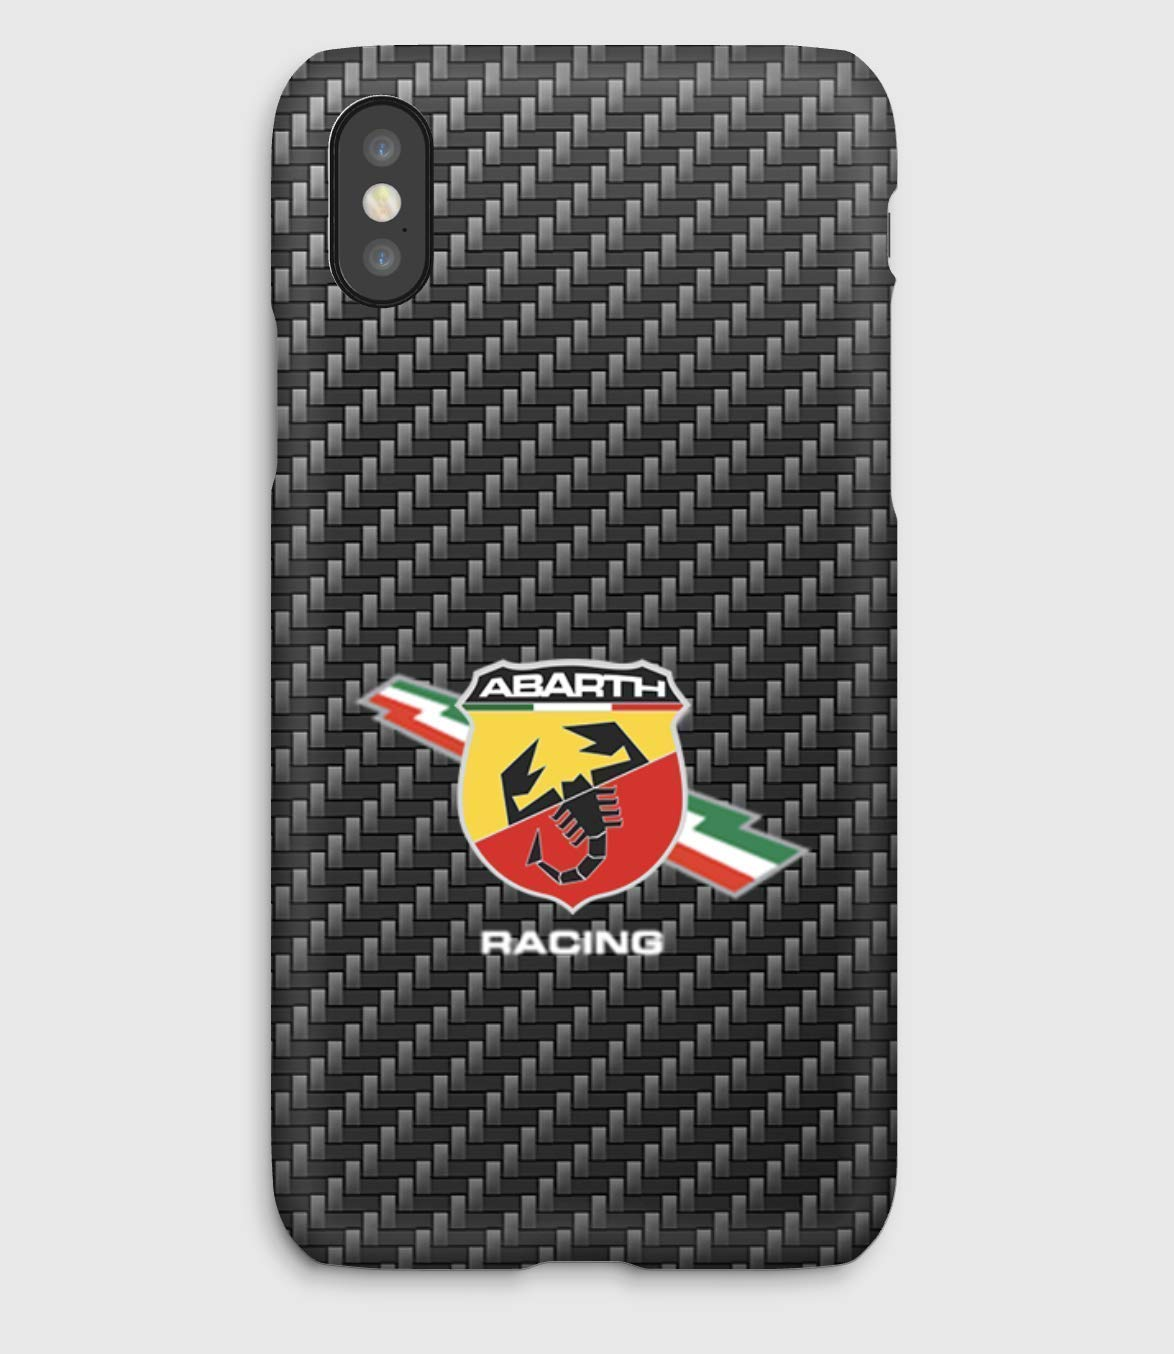 Abarth Racing, coque pour iPhone XS, XS Max, XR, X, 8, 8+, 7, 7+, 6S, 6, 6S+, 6+, 5C, 5, 5S, 5SE, 4S, 4,